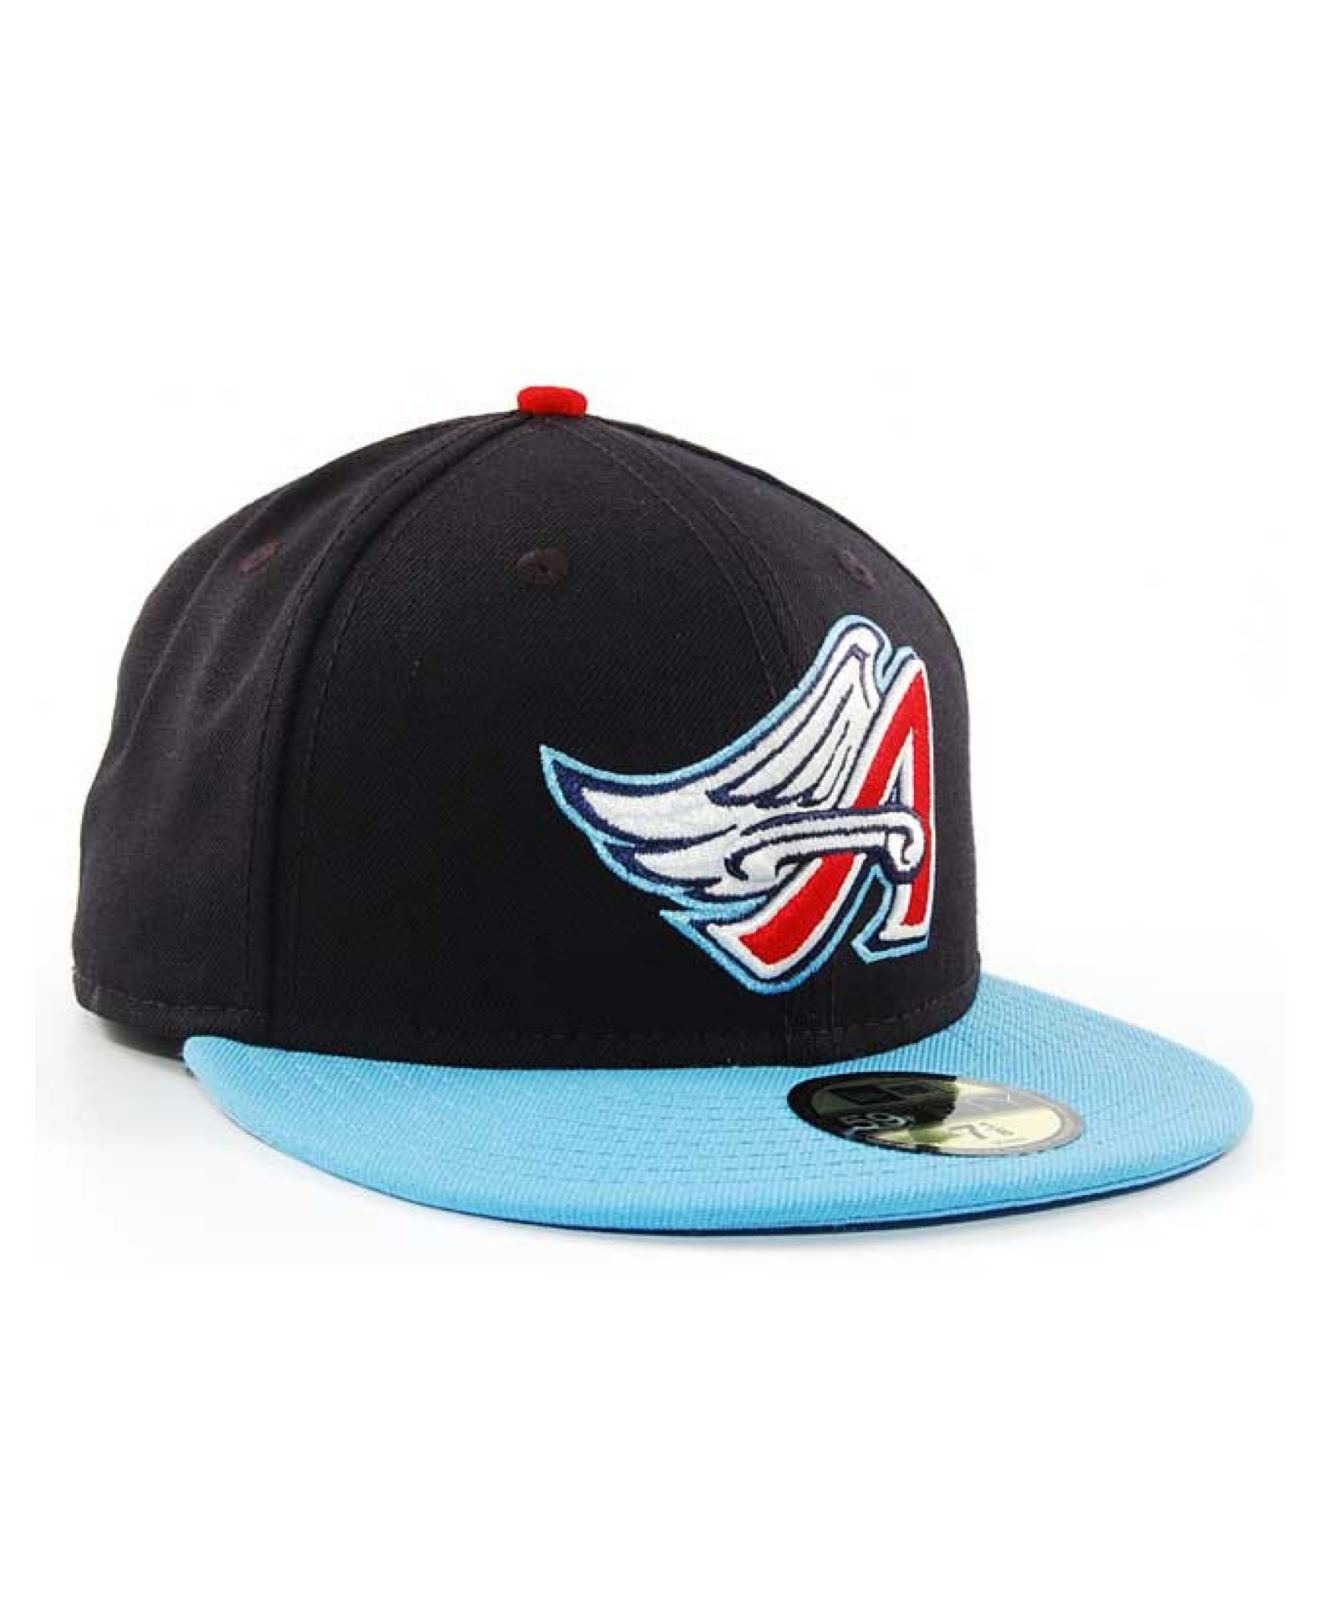 59ae5ecebea063 KTZ Los Angeles Angels Of Anaheim Mlb Cooperstown 59fifty Cap in ...